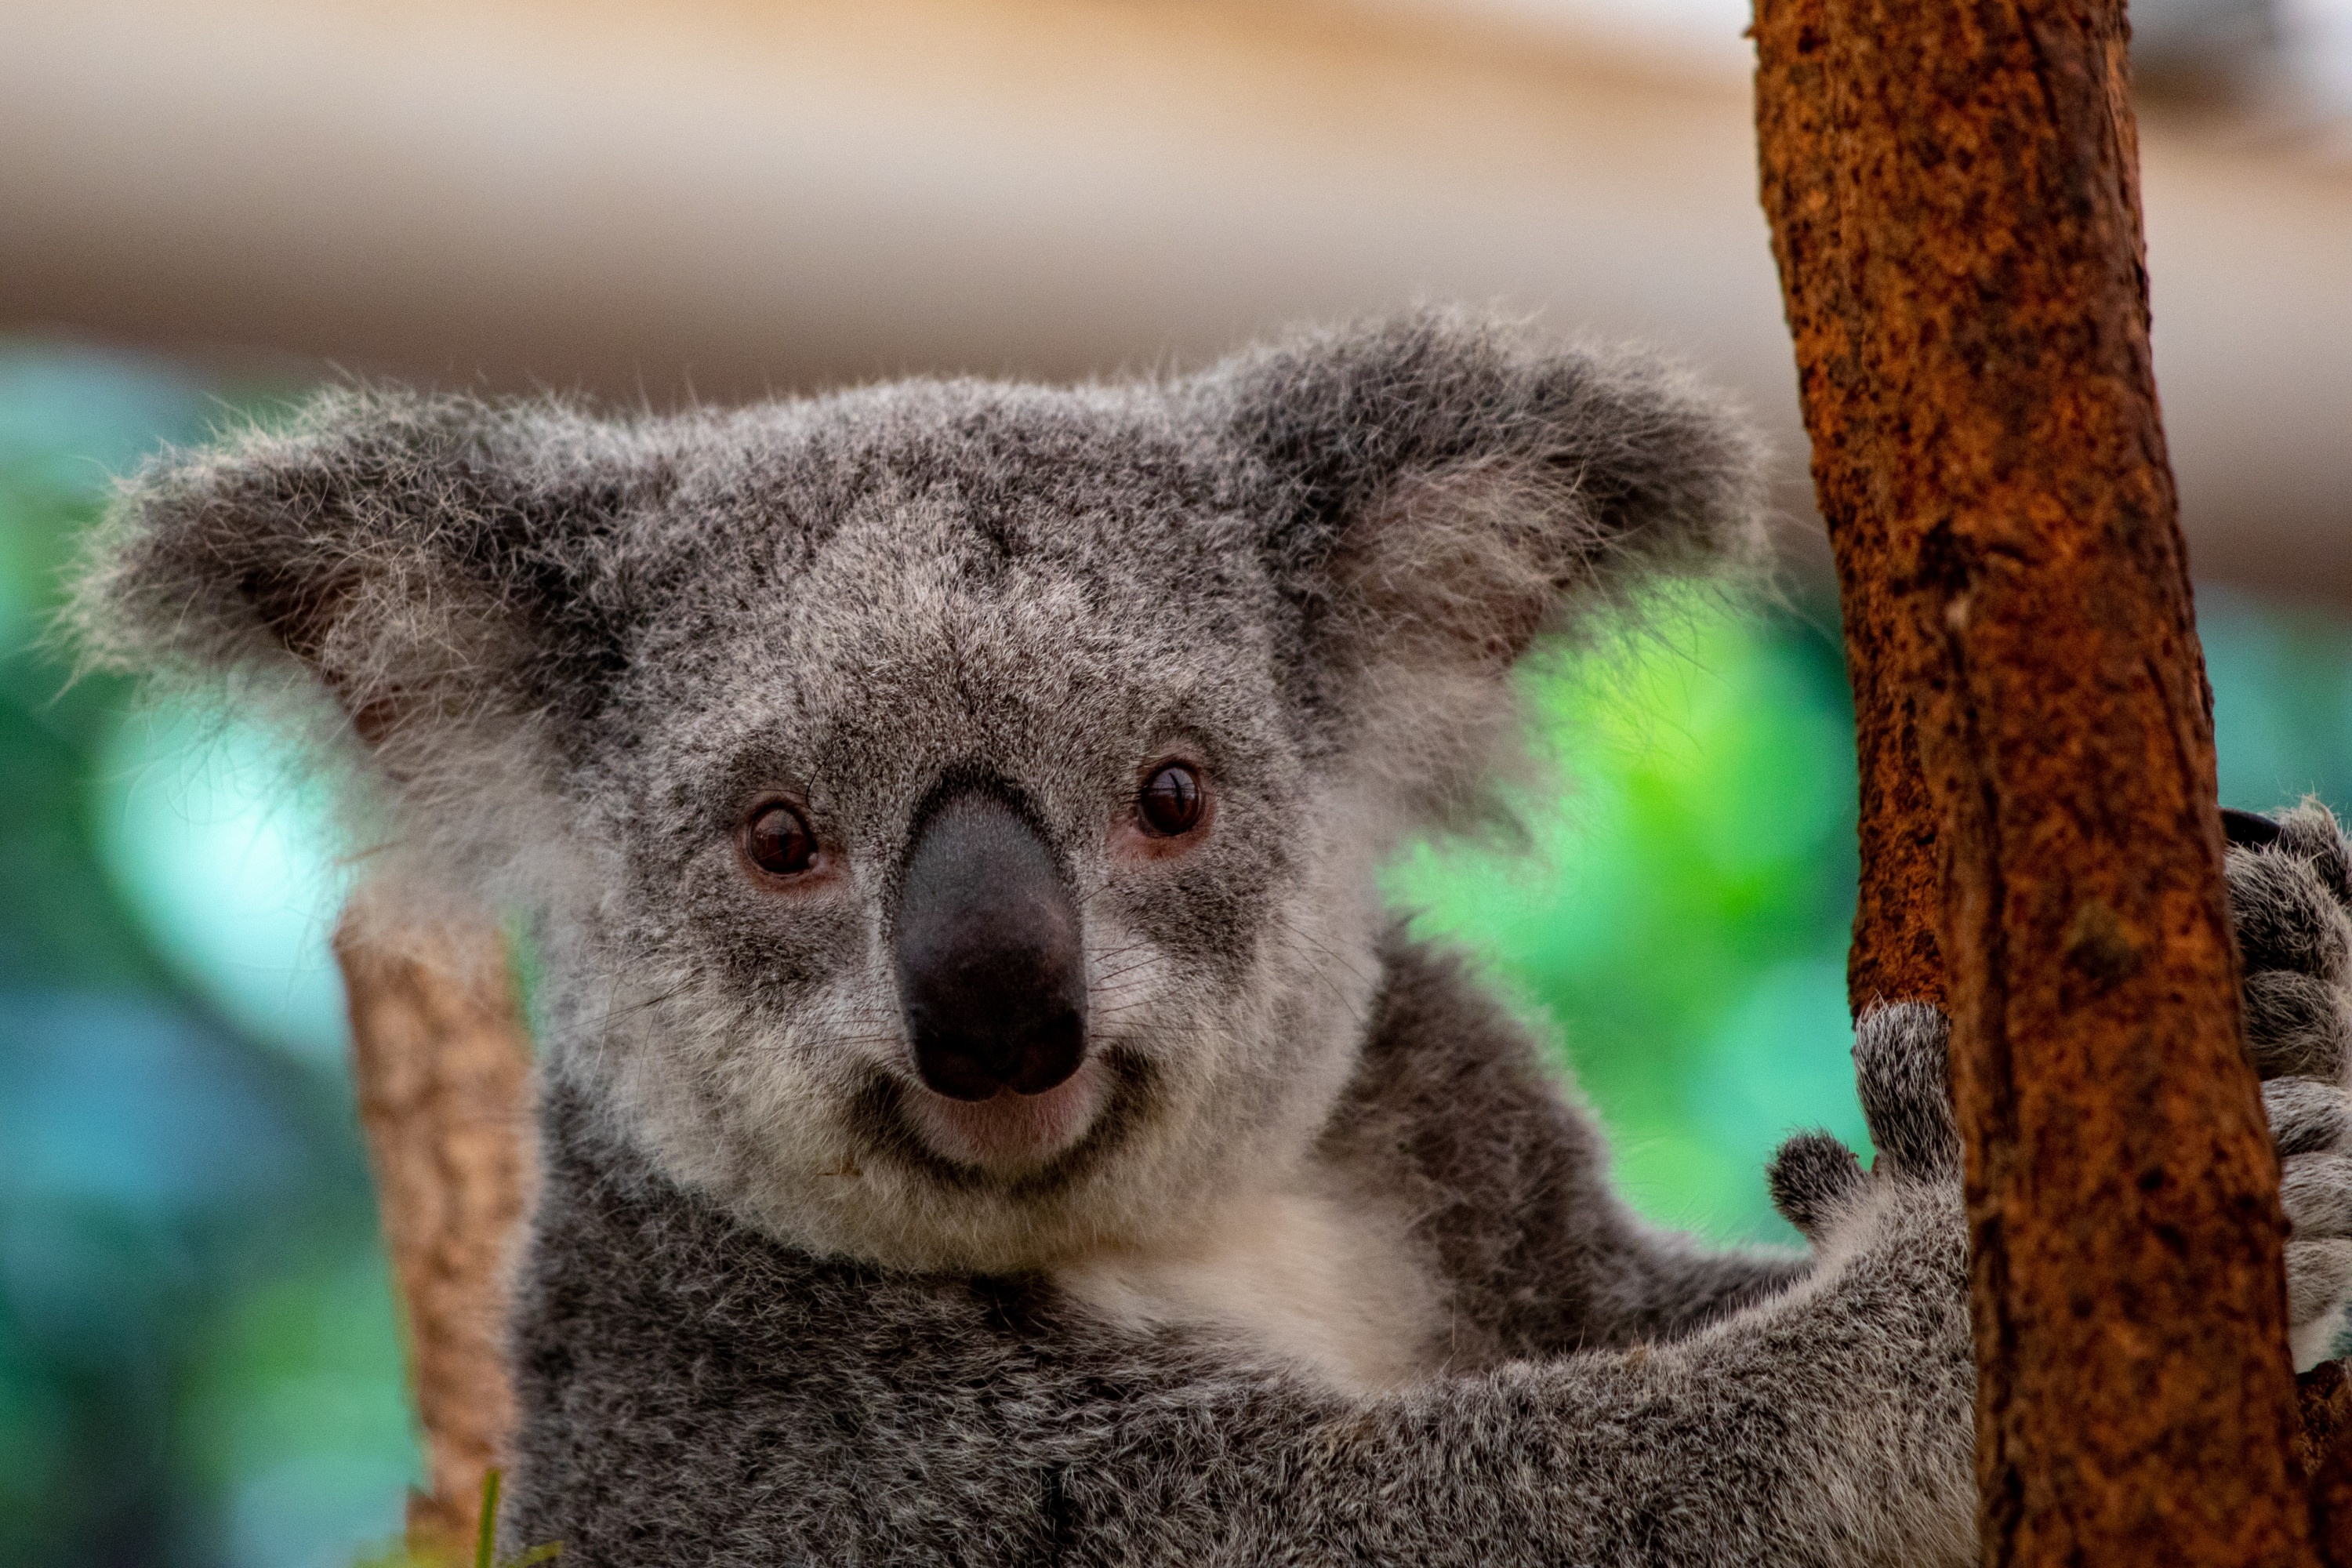 A koala holding on to a gumtree while looking into the camera.